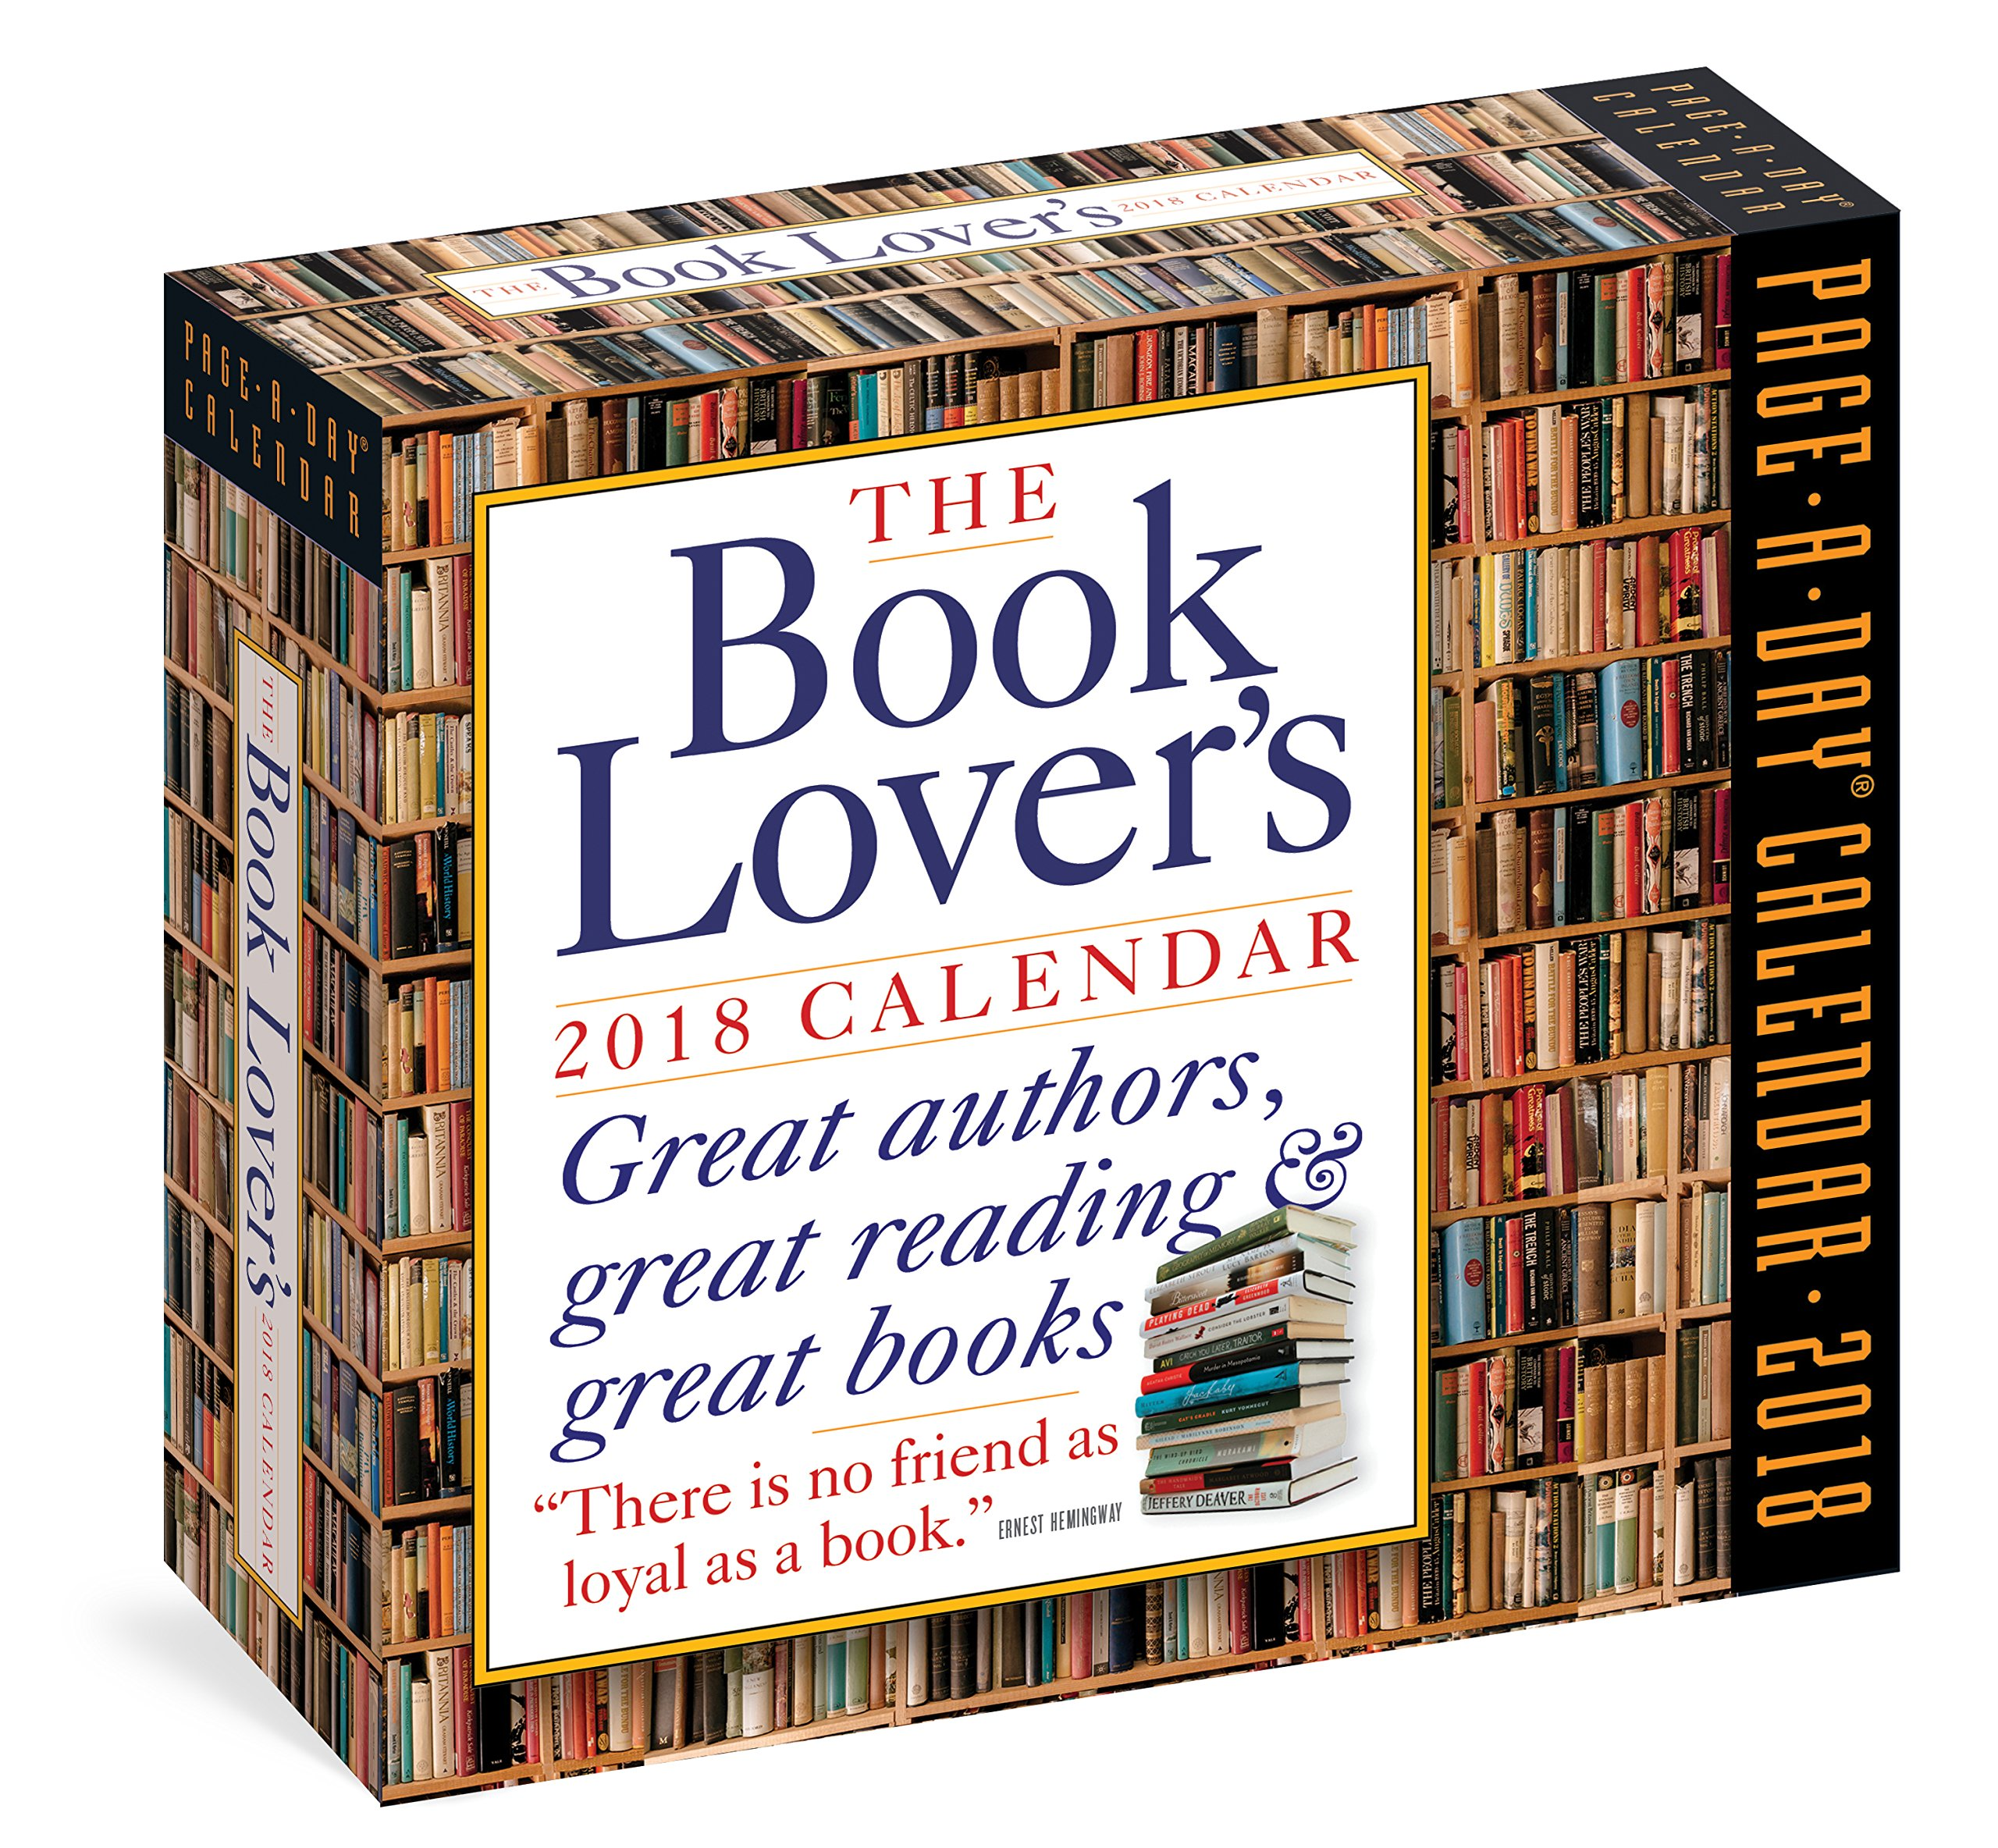 The Book Lover's Page-A-Day Calendar 2018